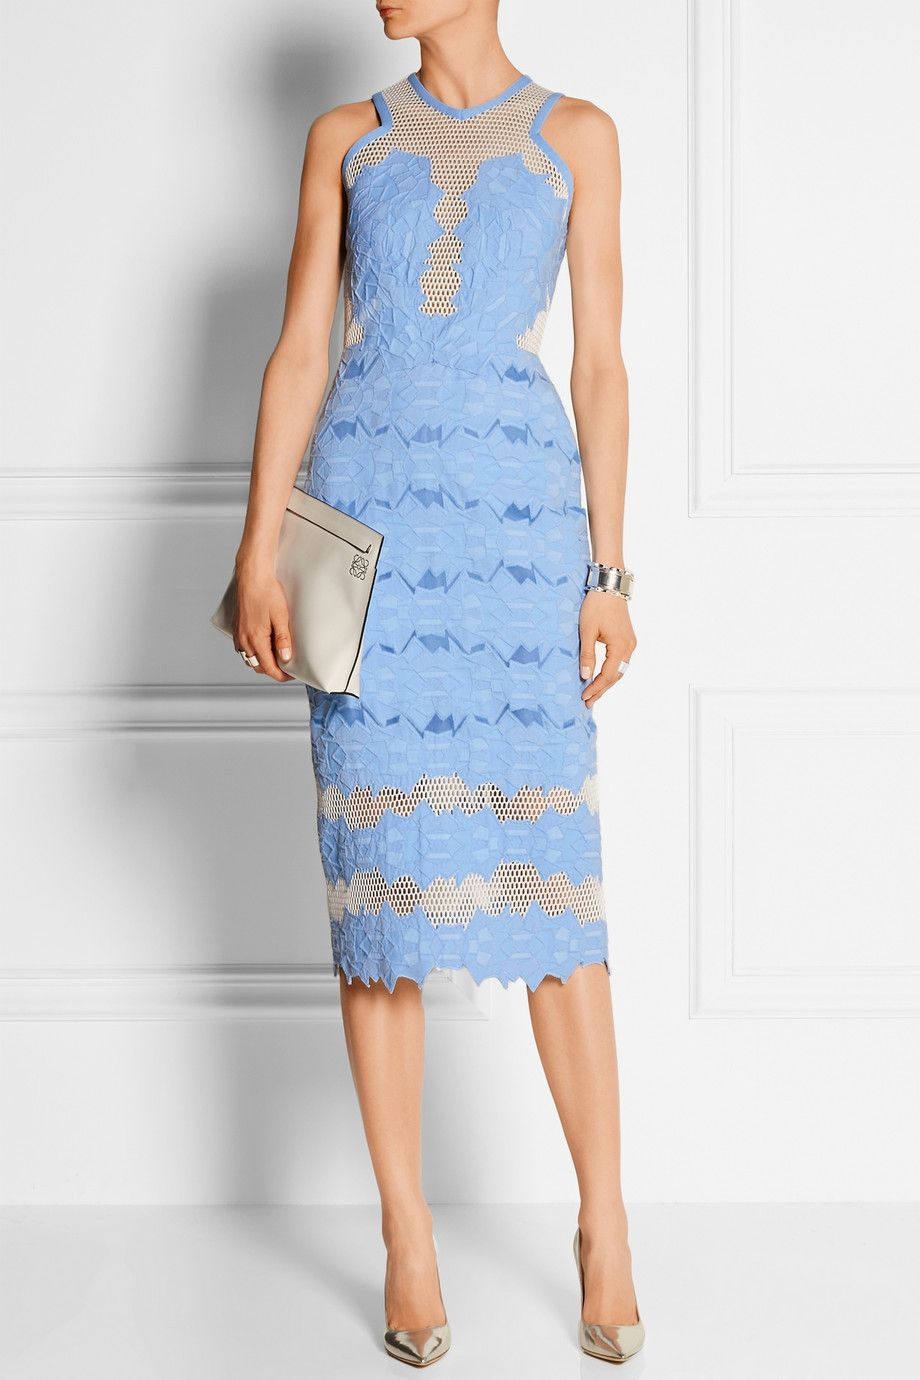 Le Meilleur Jonathan Simkhai Cotton Blend Brocade And Mesh Midi Ce Mois Ci